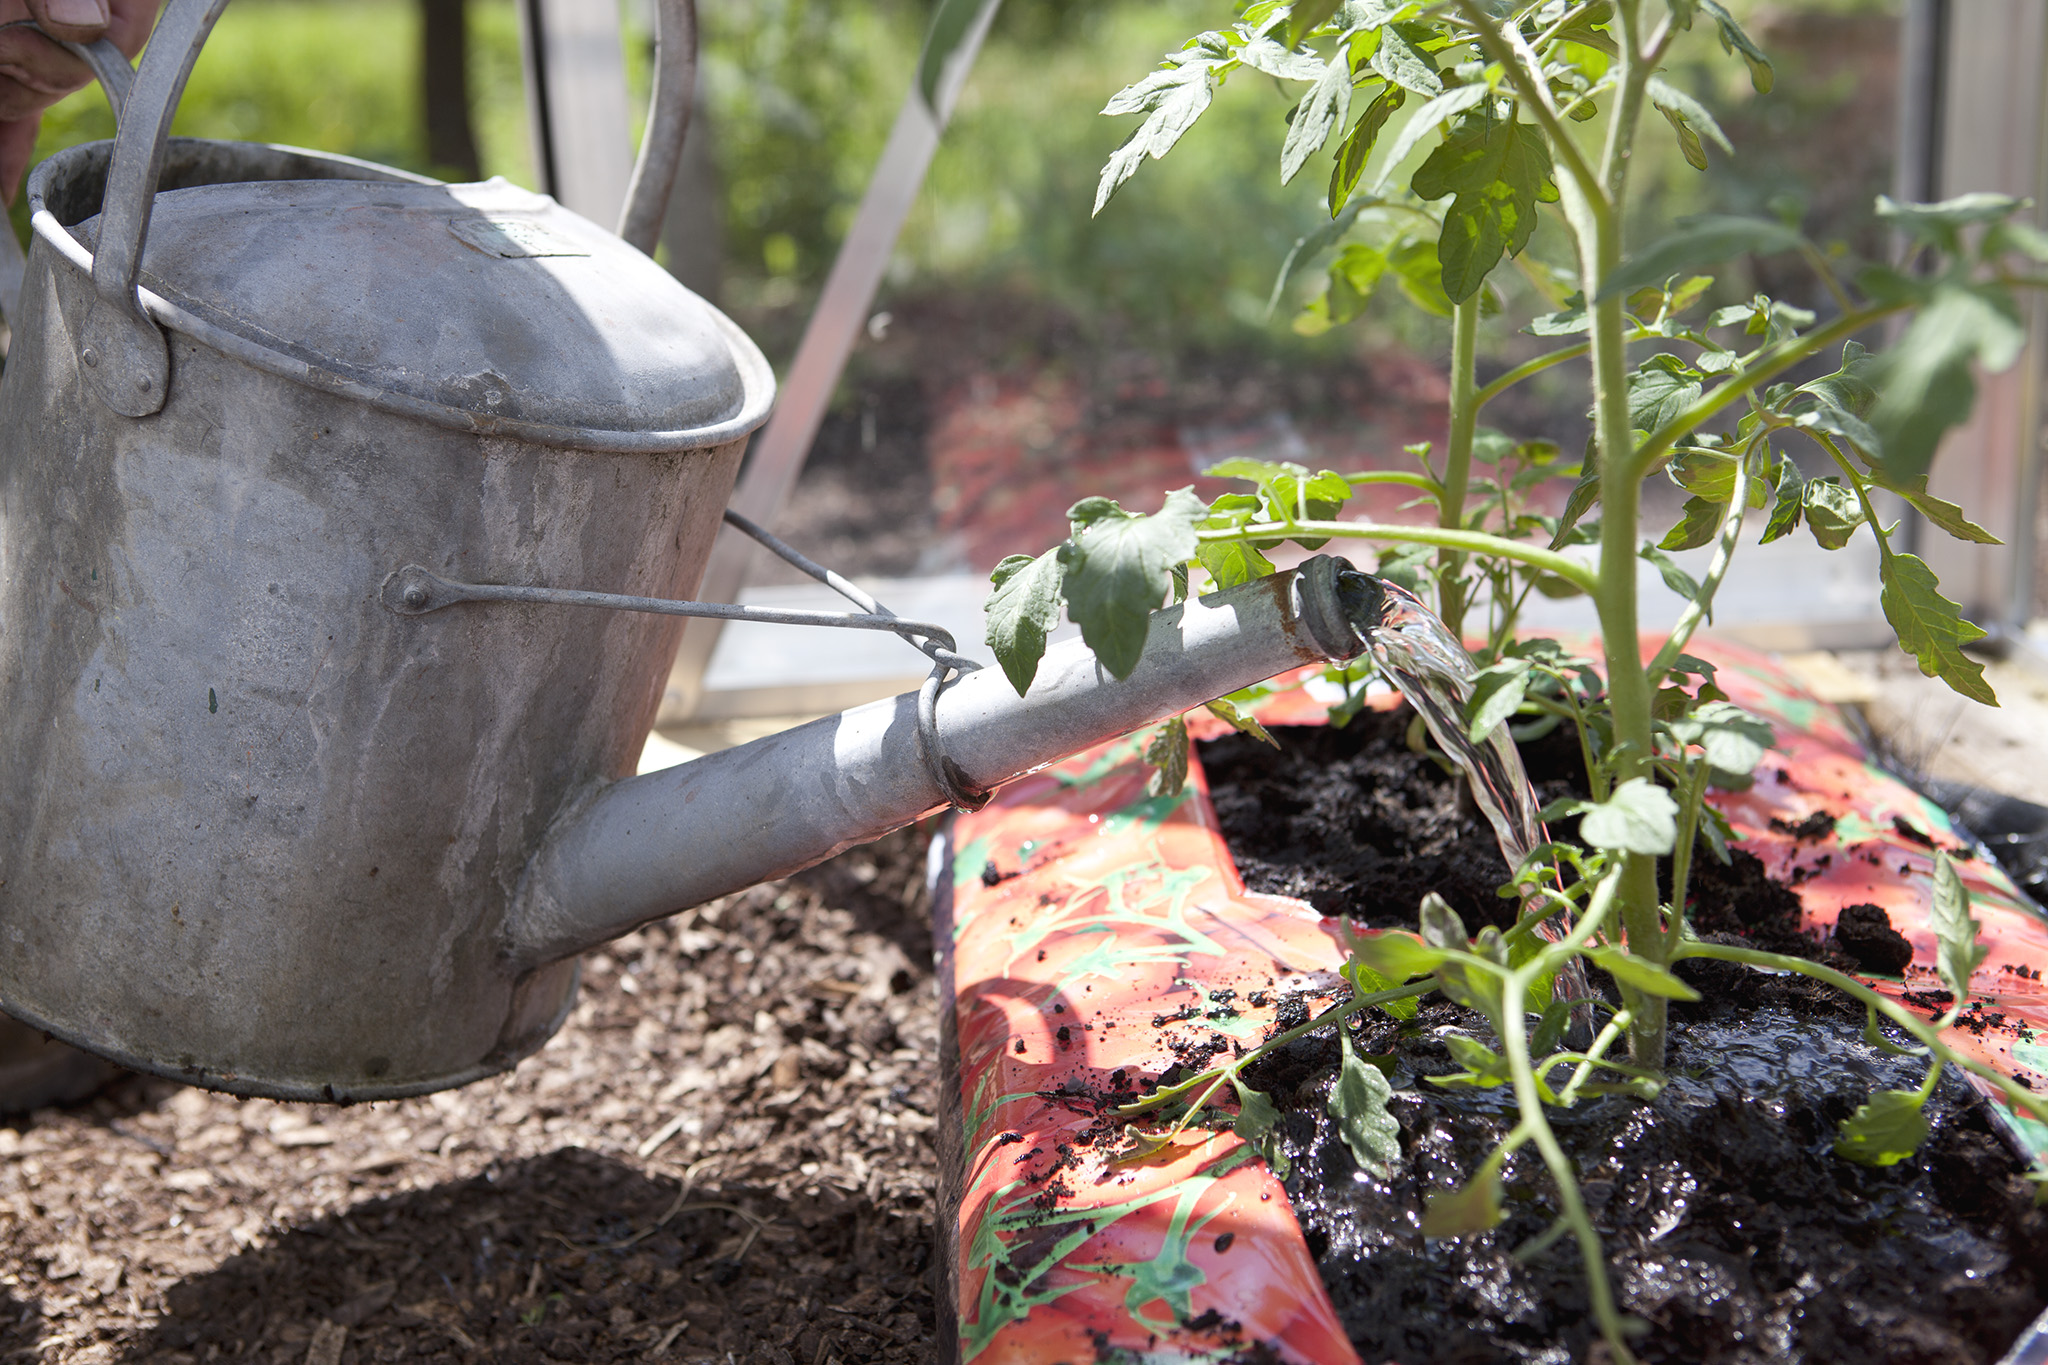 tomatoes-growing-in-a-bag-2